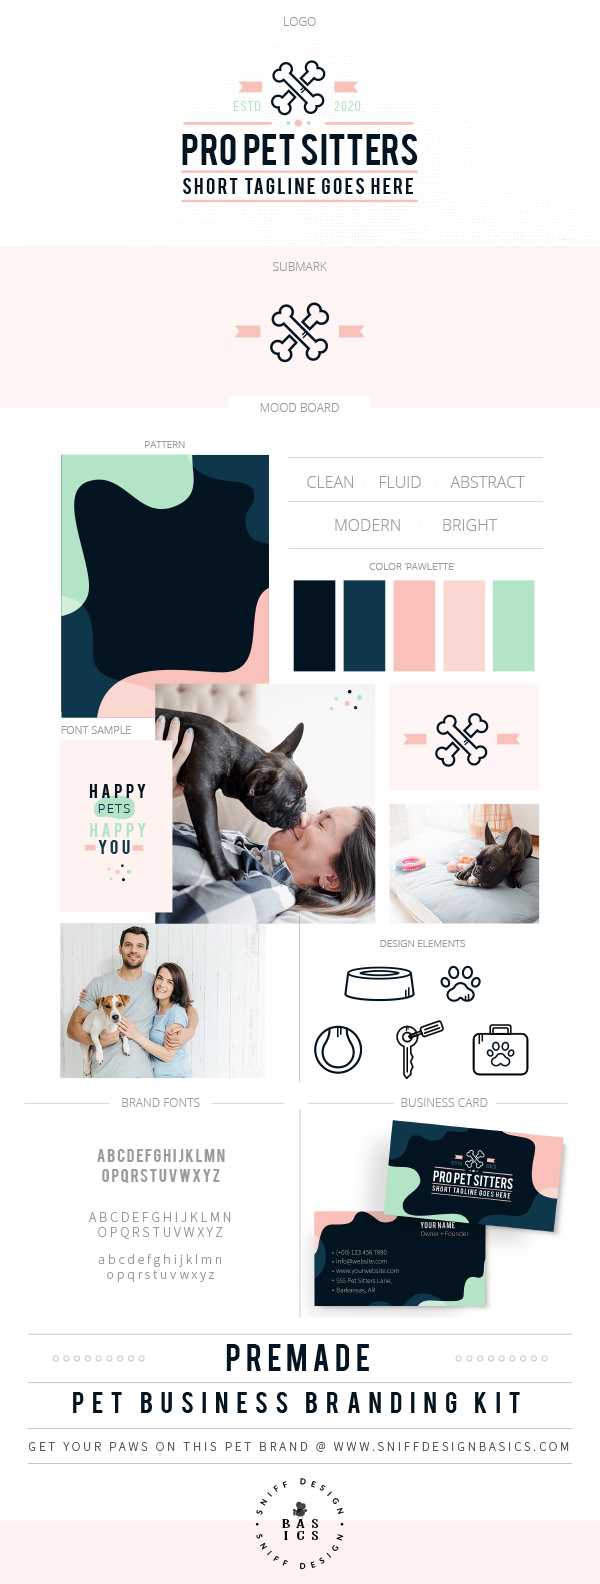 Professional Pet Sitting Premade Pet Business Branding Kit by Sniff Design Basics